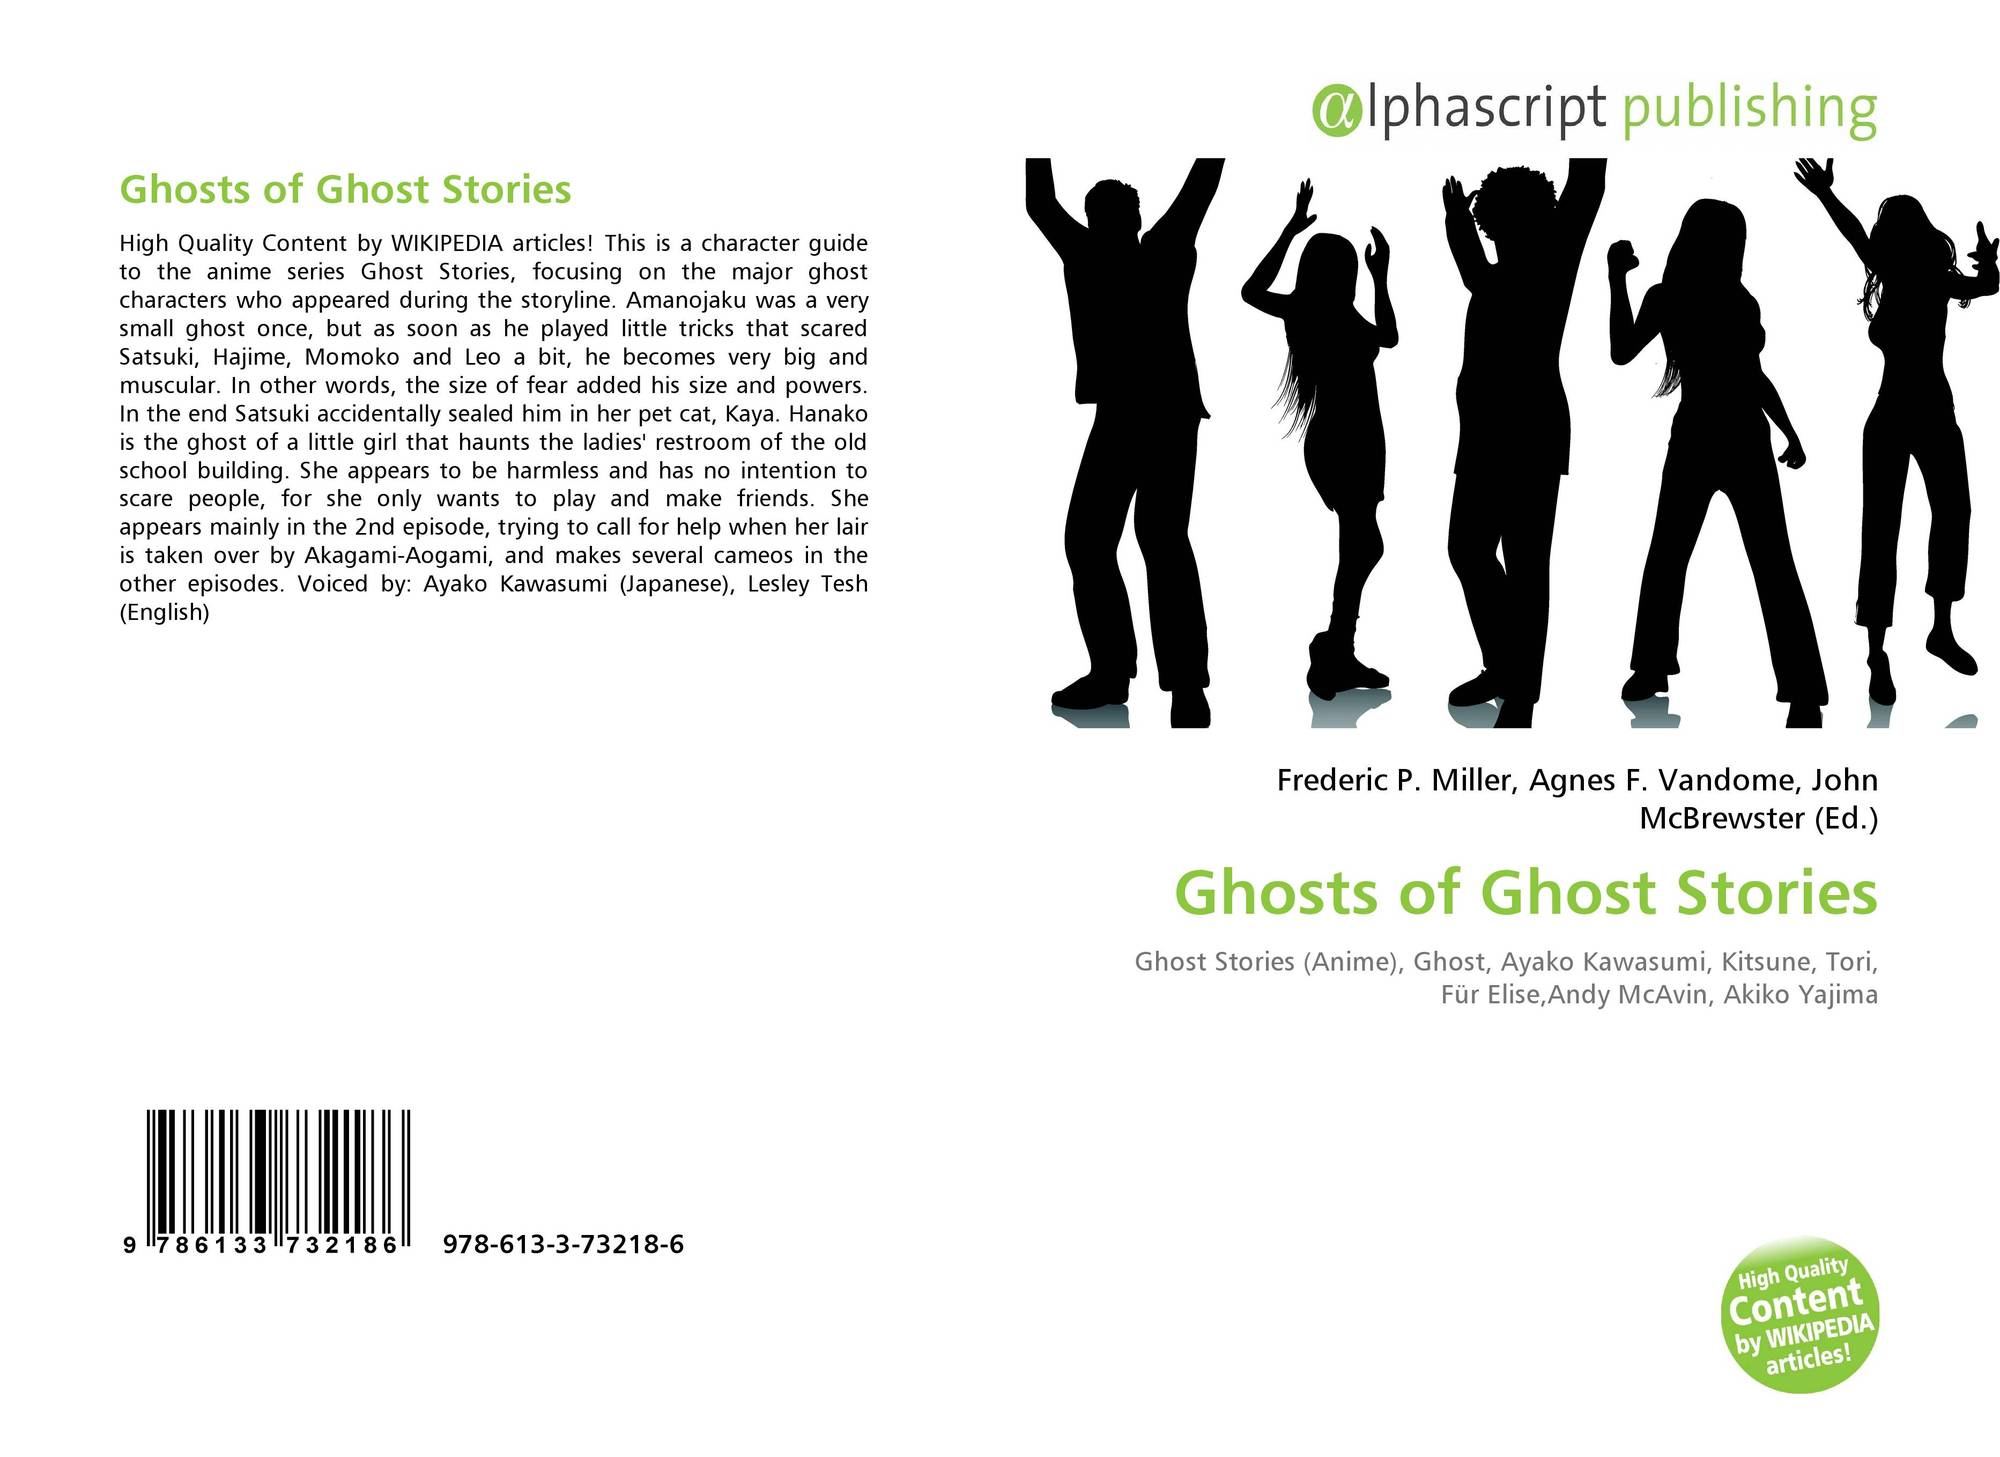 Ghosts of Ghost Stories, 978-613-3-73218-6, 6133732180